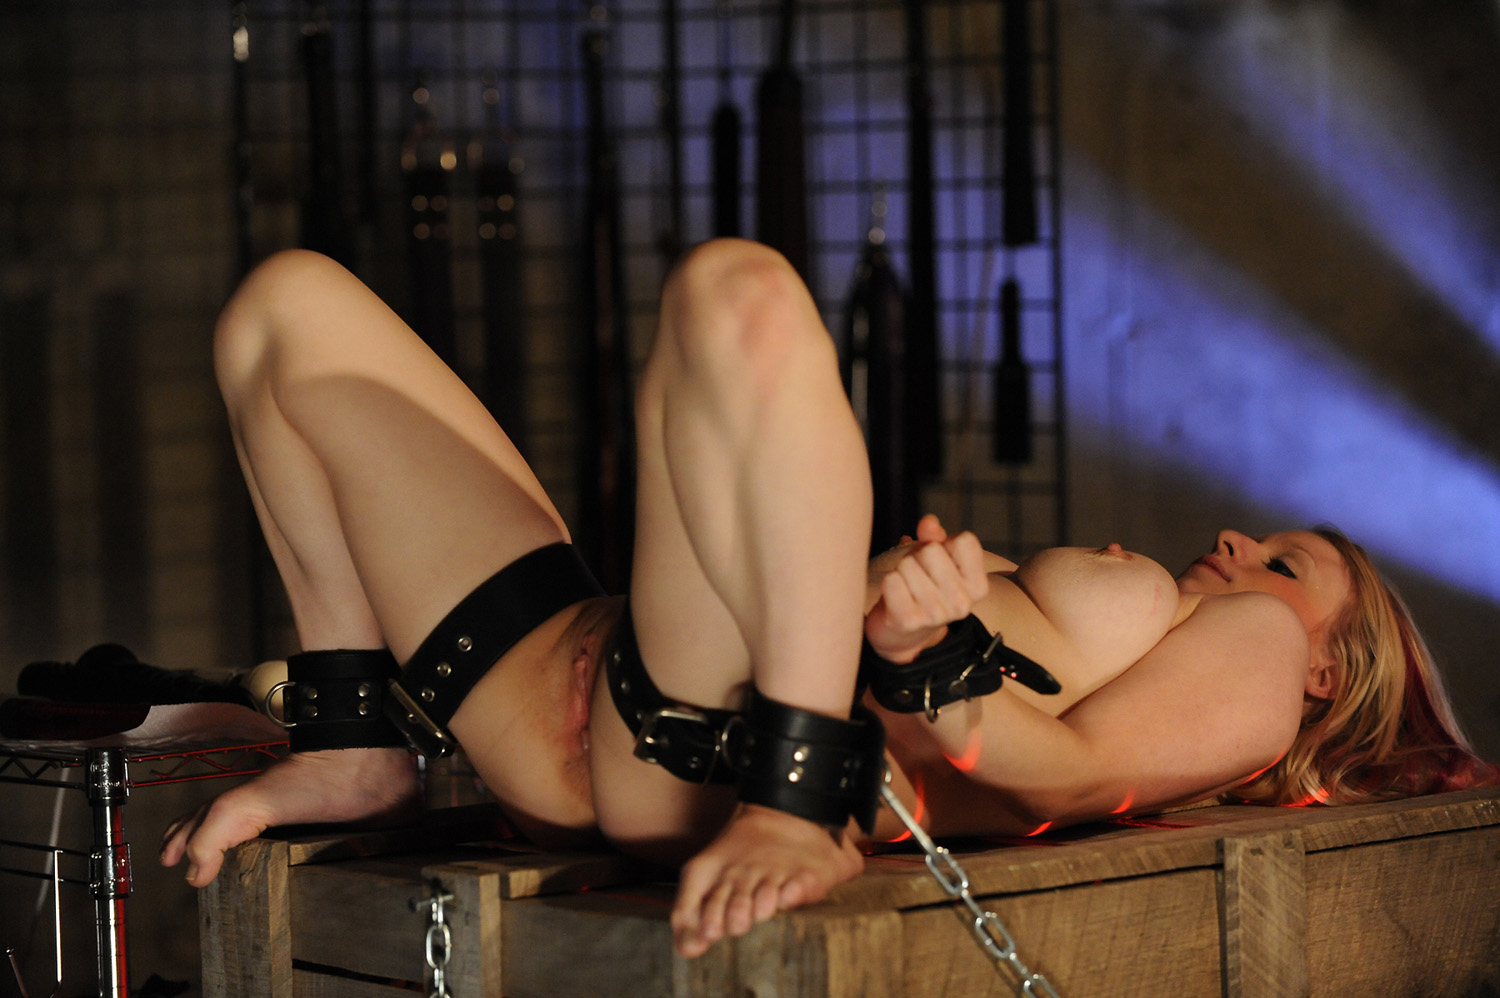 bdsm-video-gospodin-i-rabinya